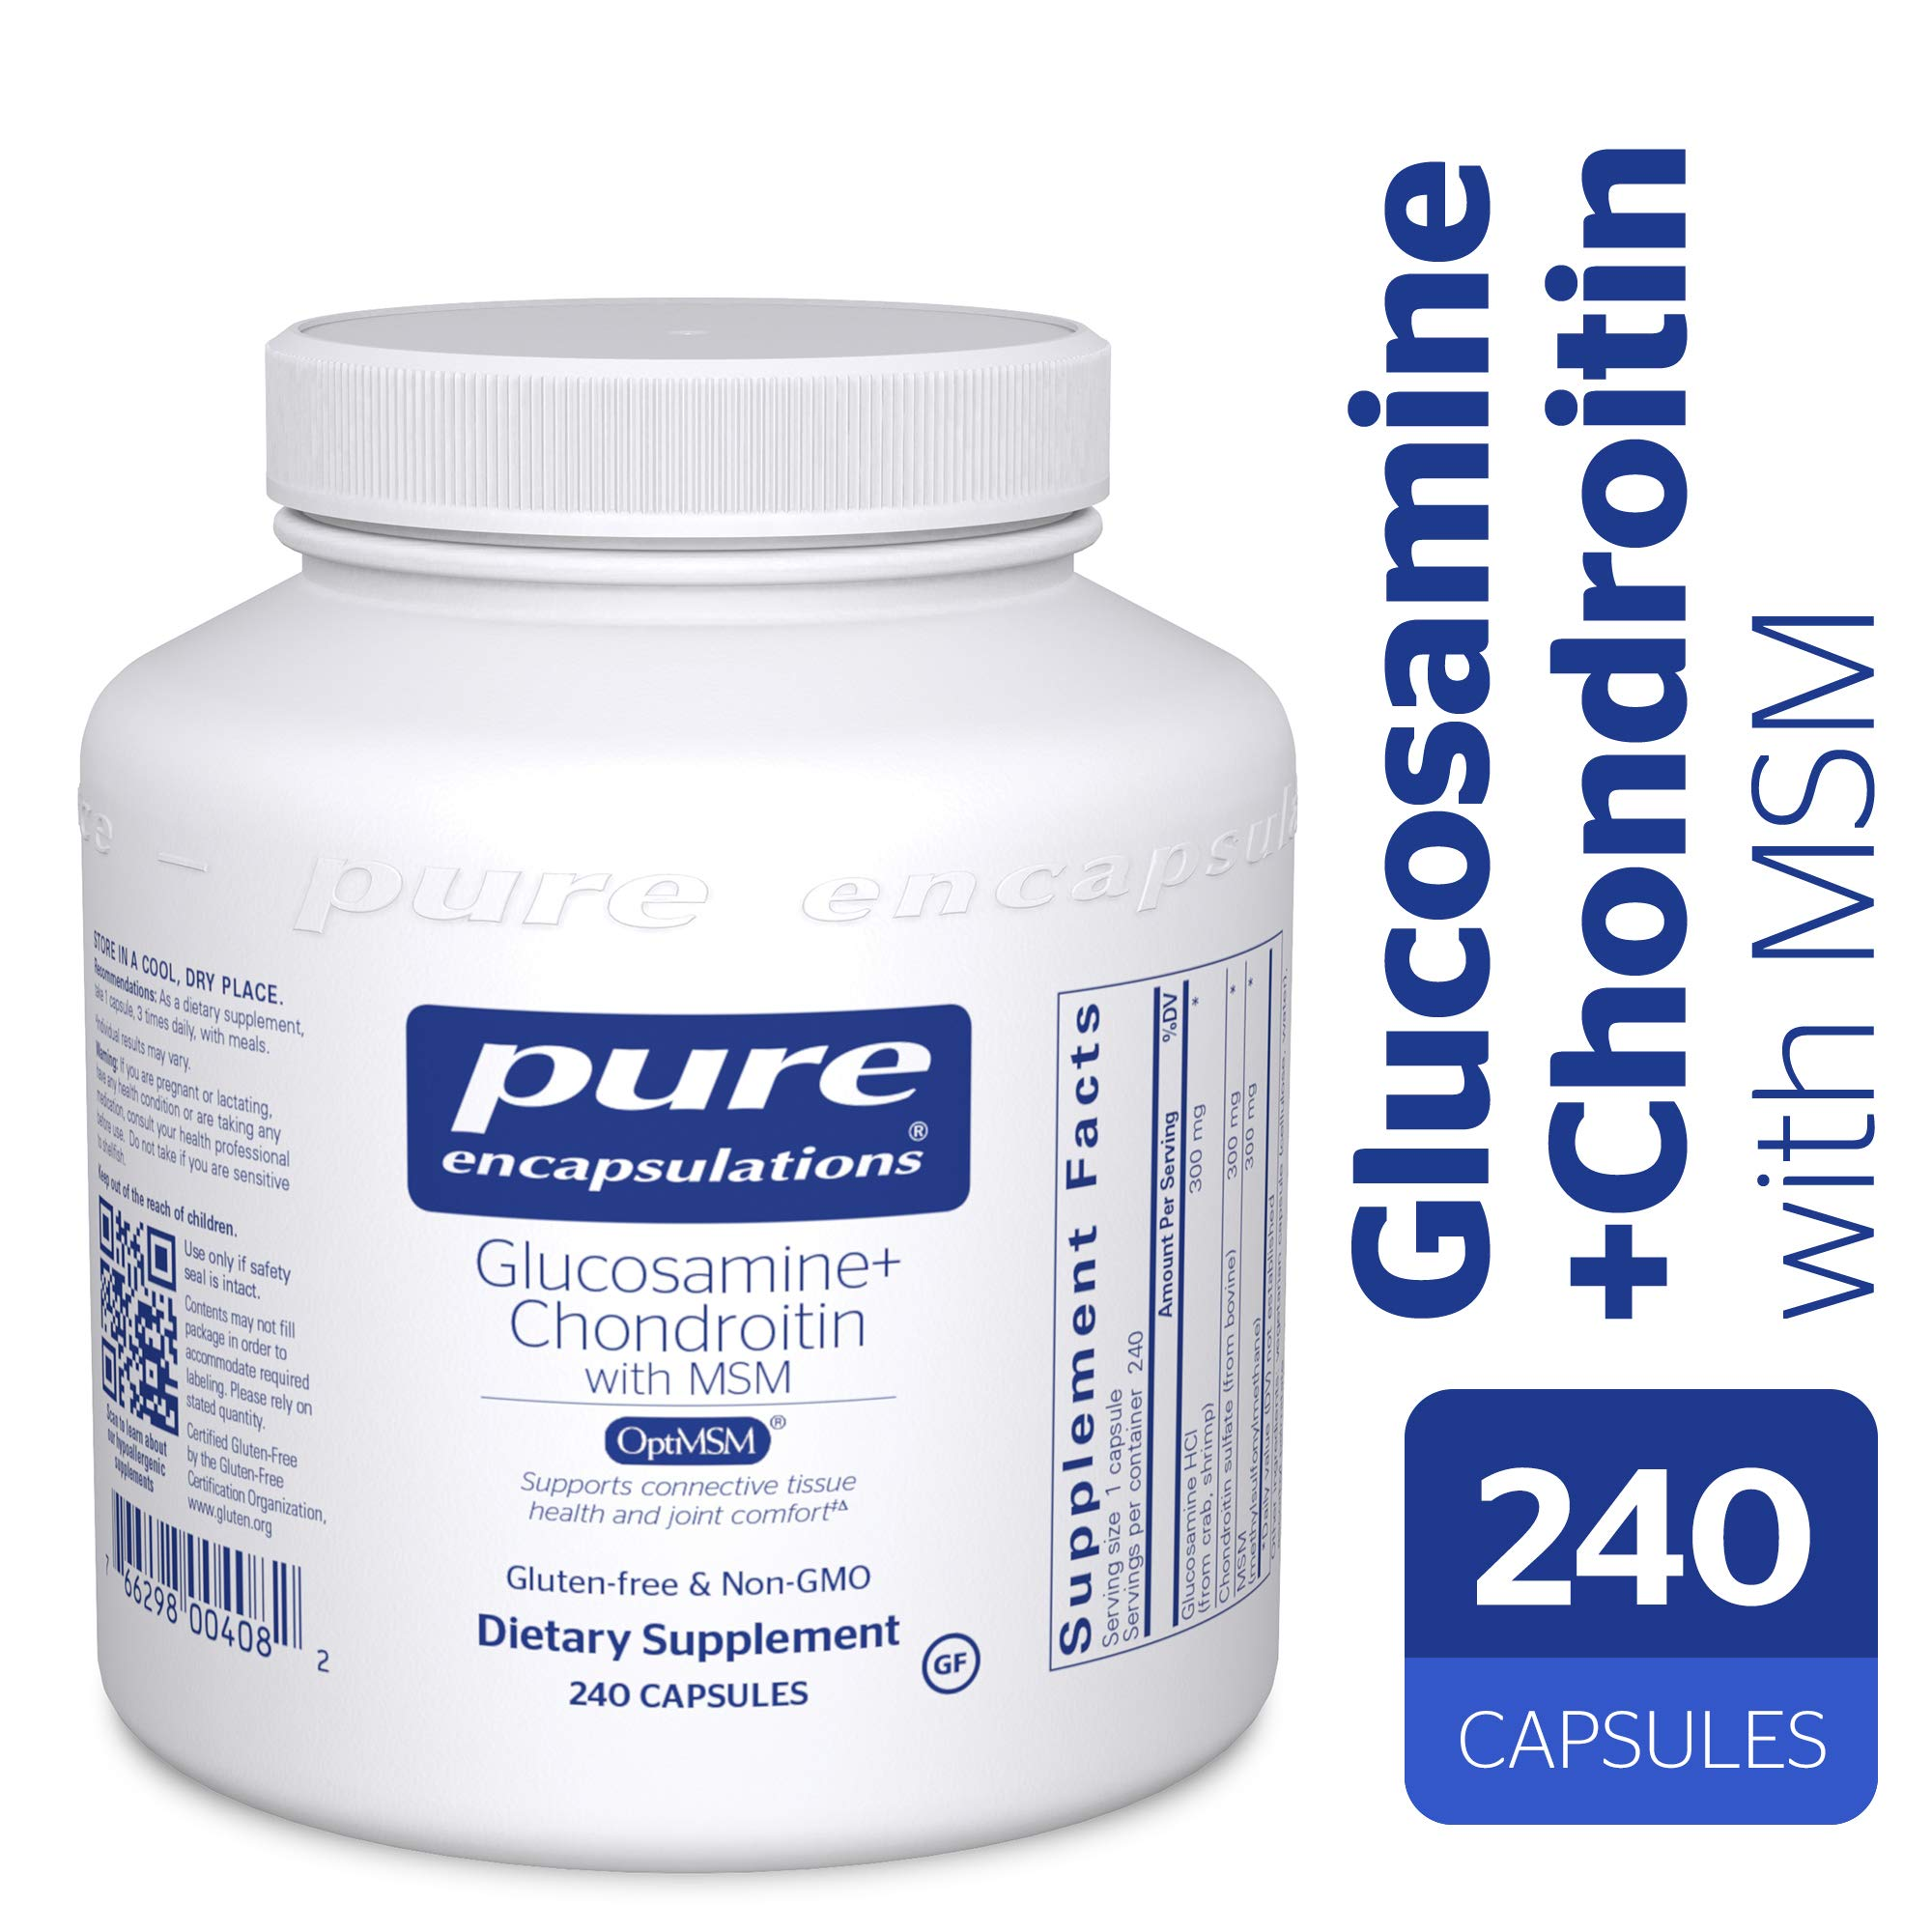 Pure Encapsulations - Glucosamine + Chondroitin with MSM - Healthy Cartilage Strength and Resilience* - 240 Capsules by Pure Encapsulations (Image #1)